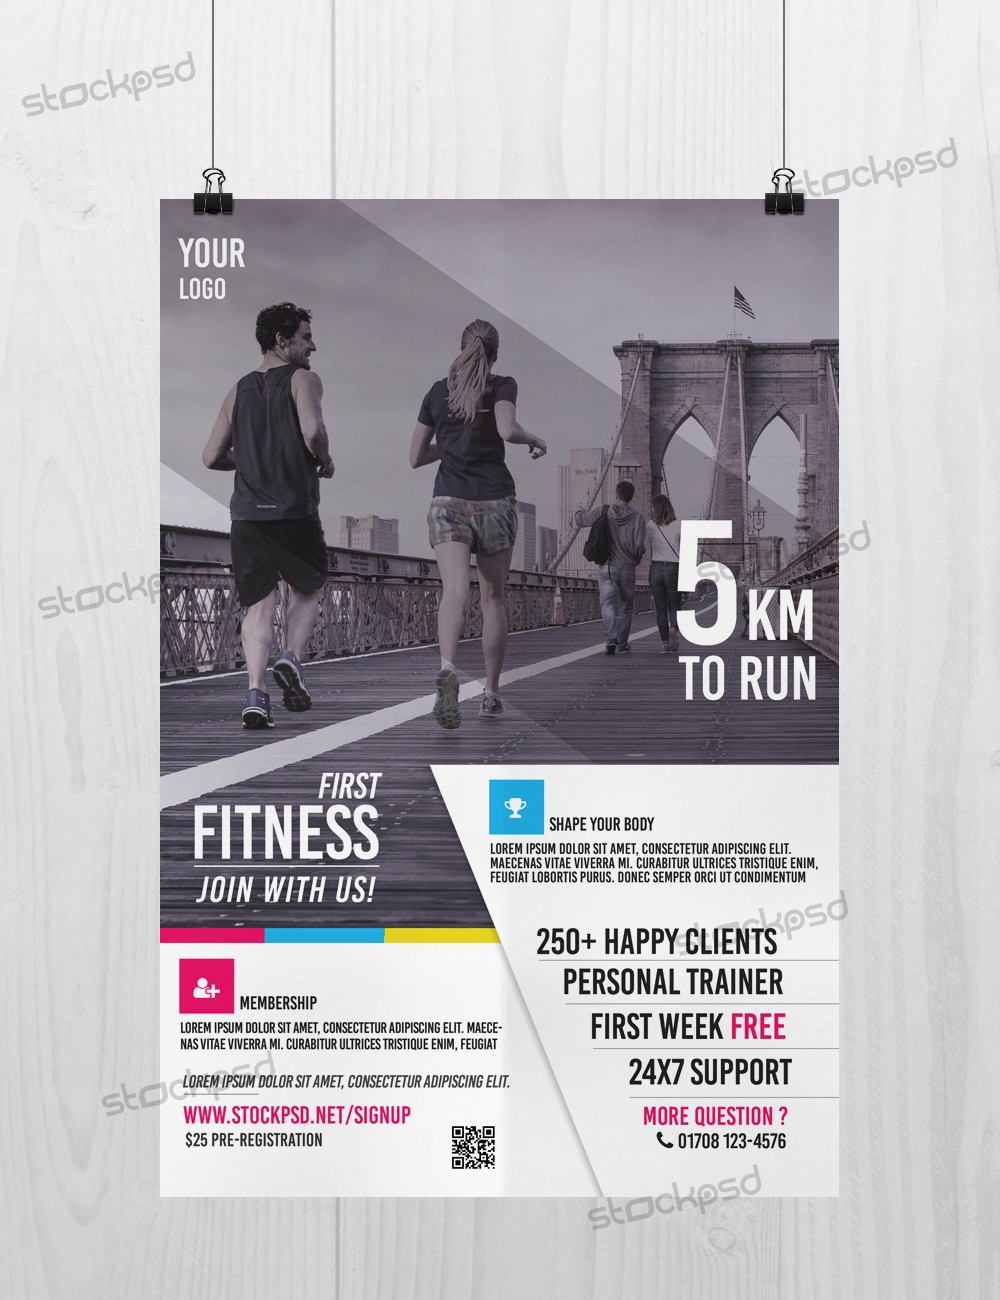 Personal training flyer template gallery wedding theme for Asa swimming lesson plan template